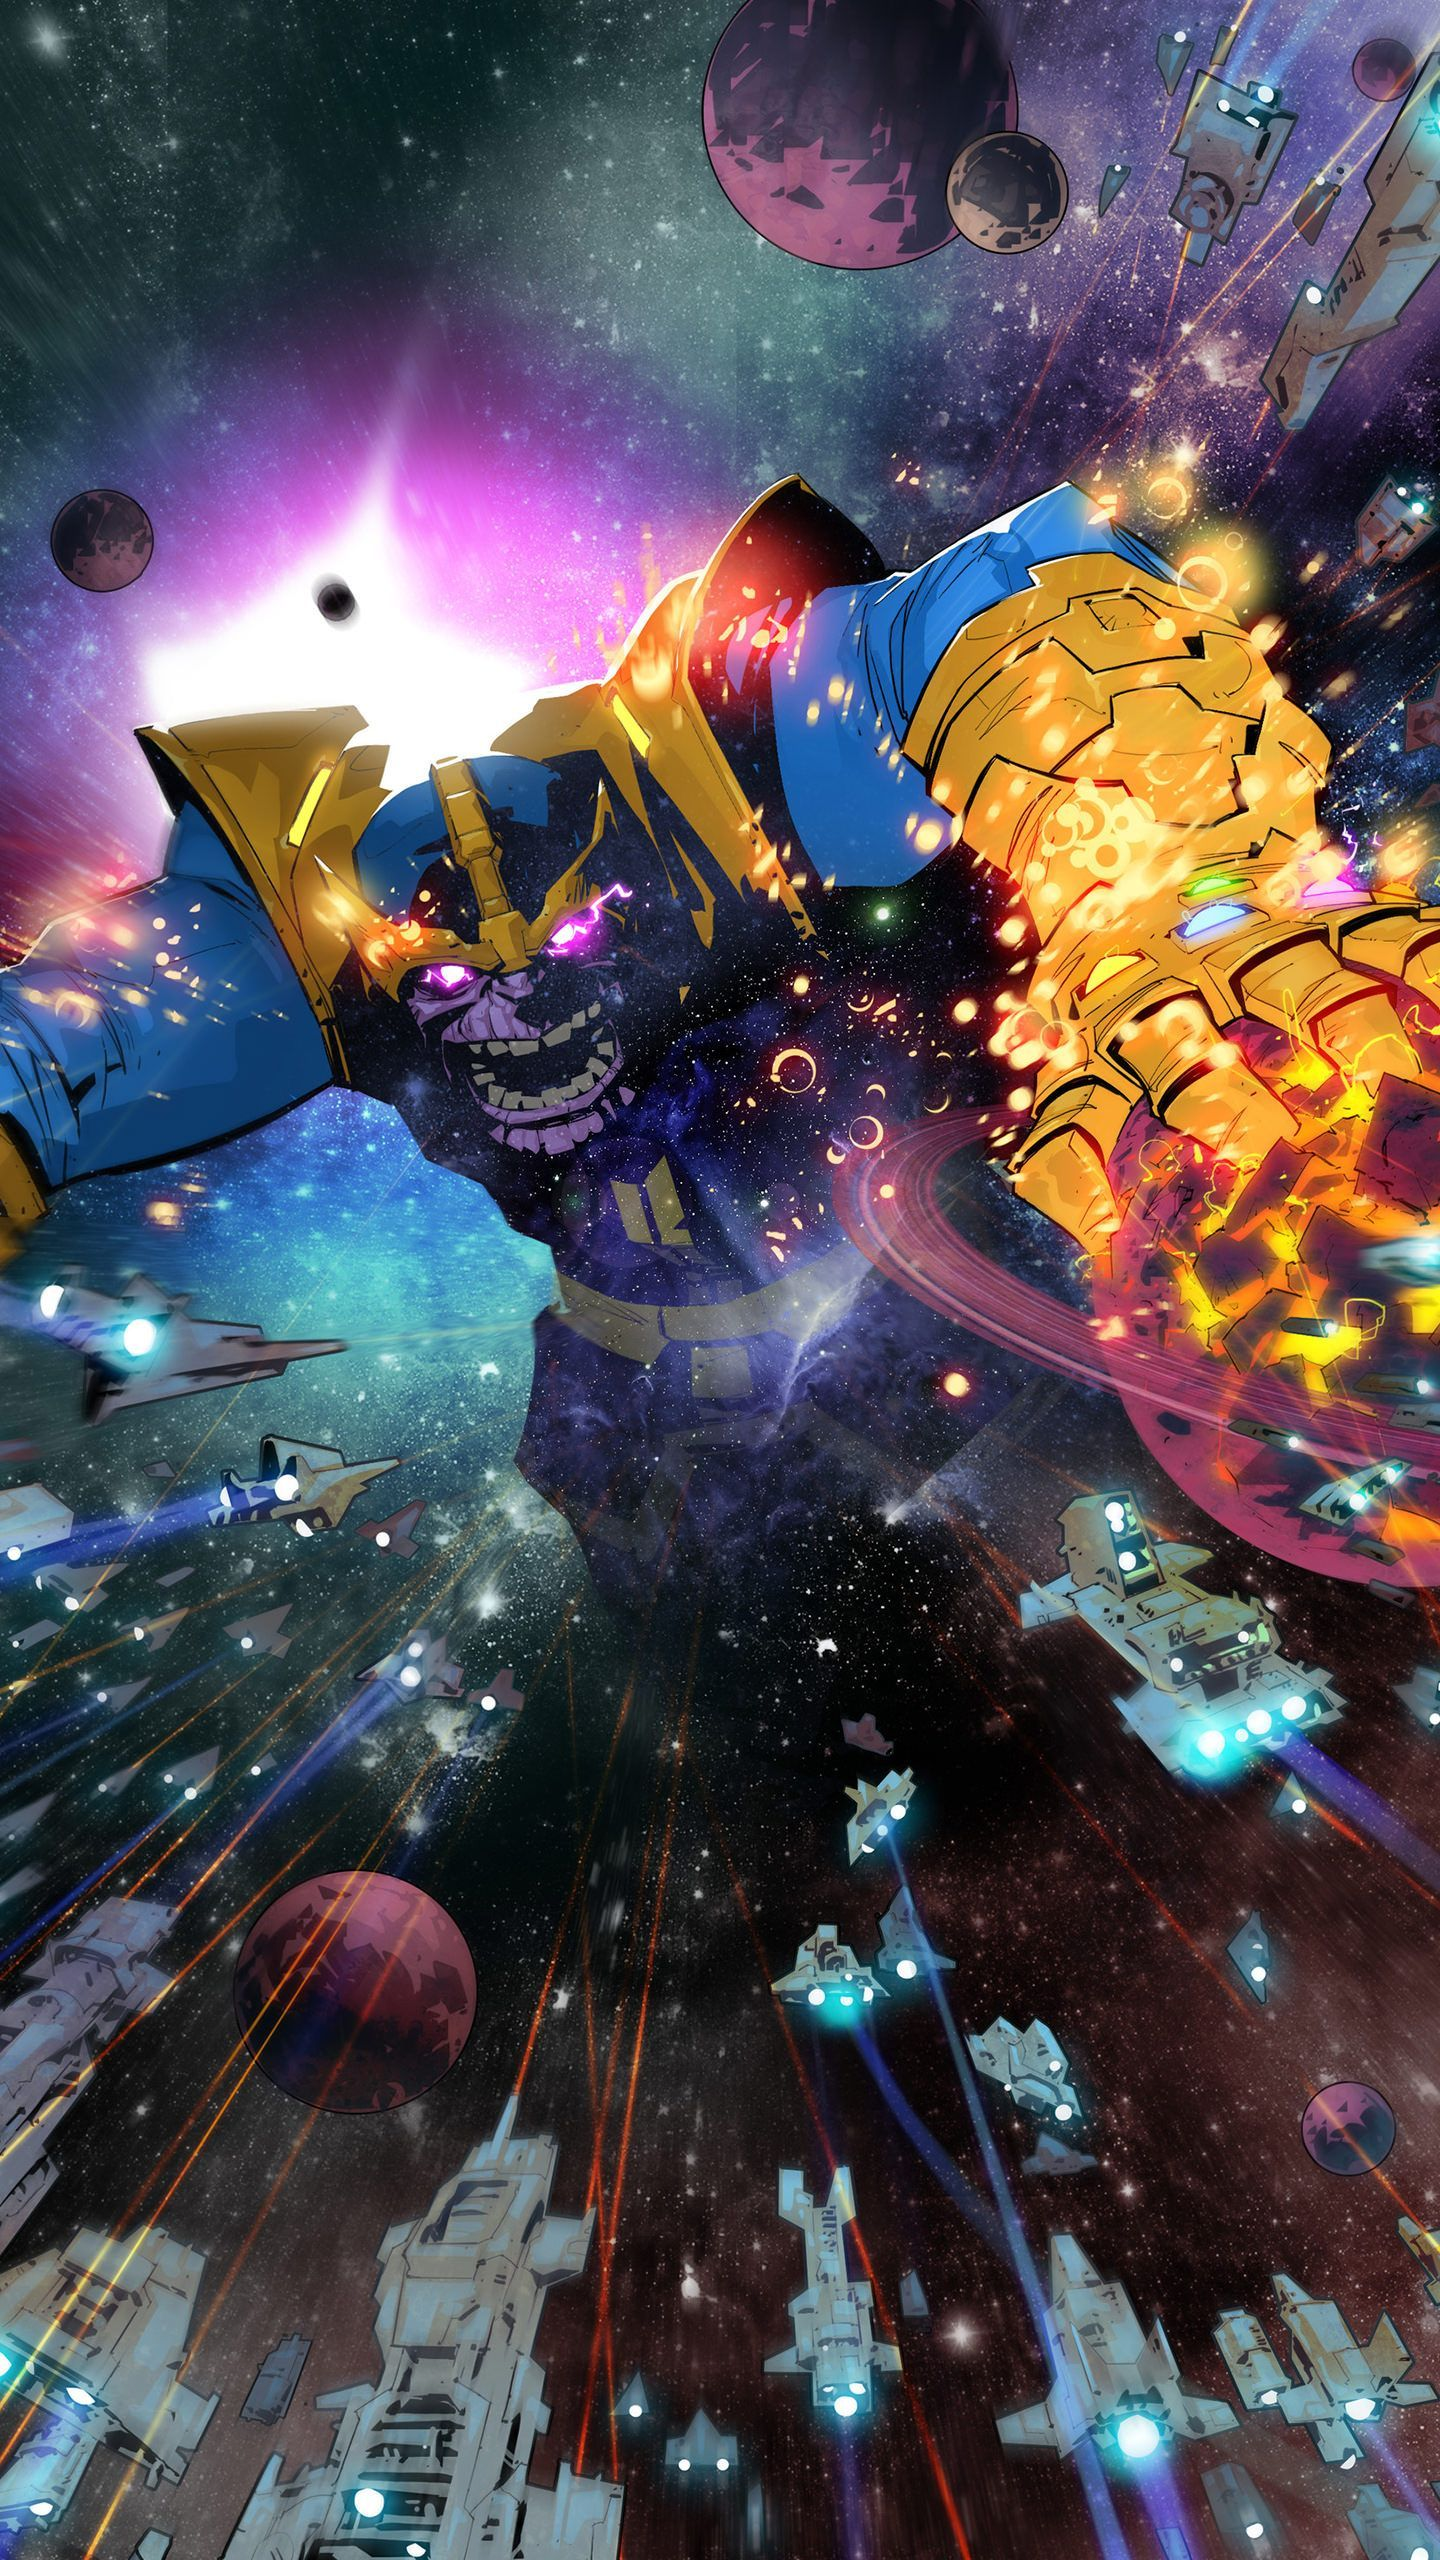 1440x2560 Thanos Comic Book Art Wallpaper for Desktop and iPhone, Android ...